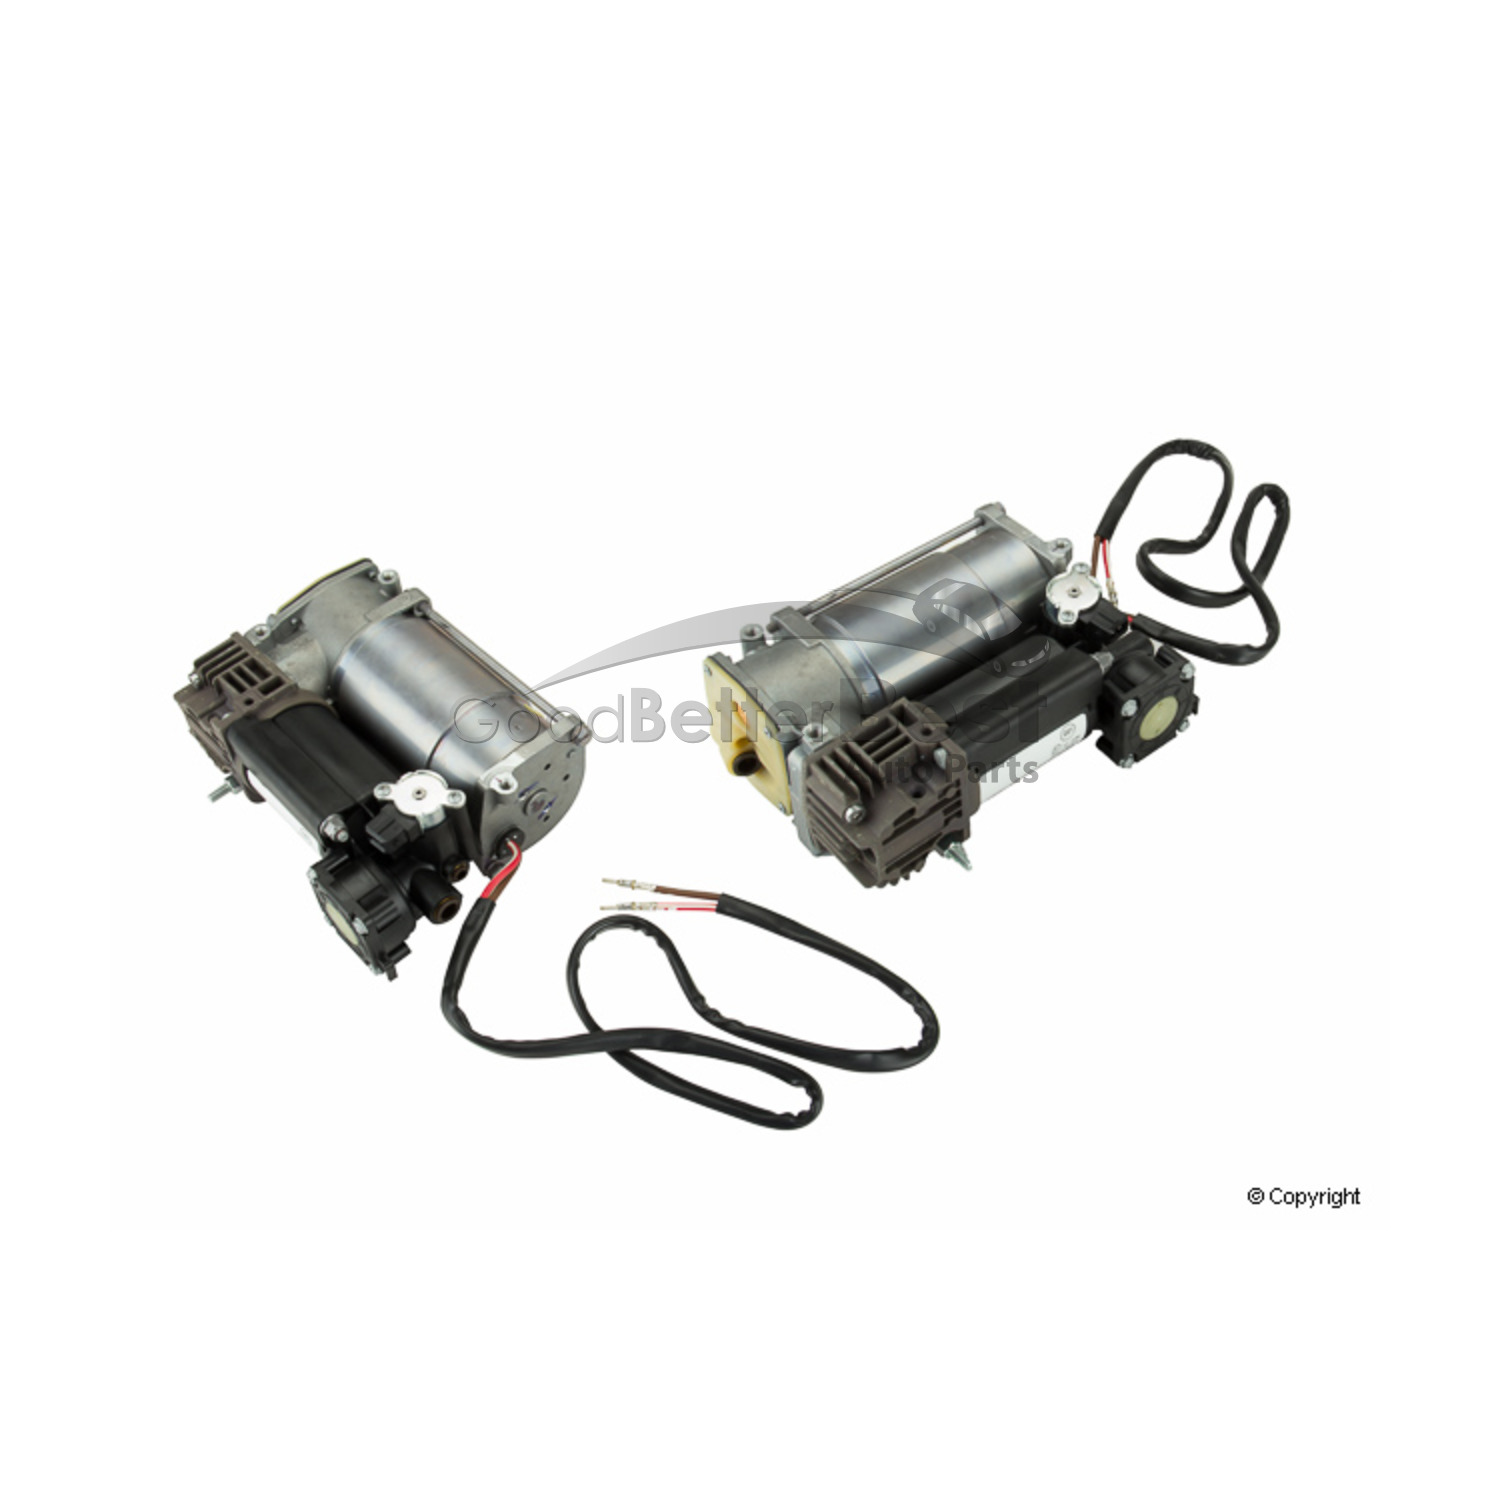 New Wabco Air Suspension Compressor P For Bmw X5